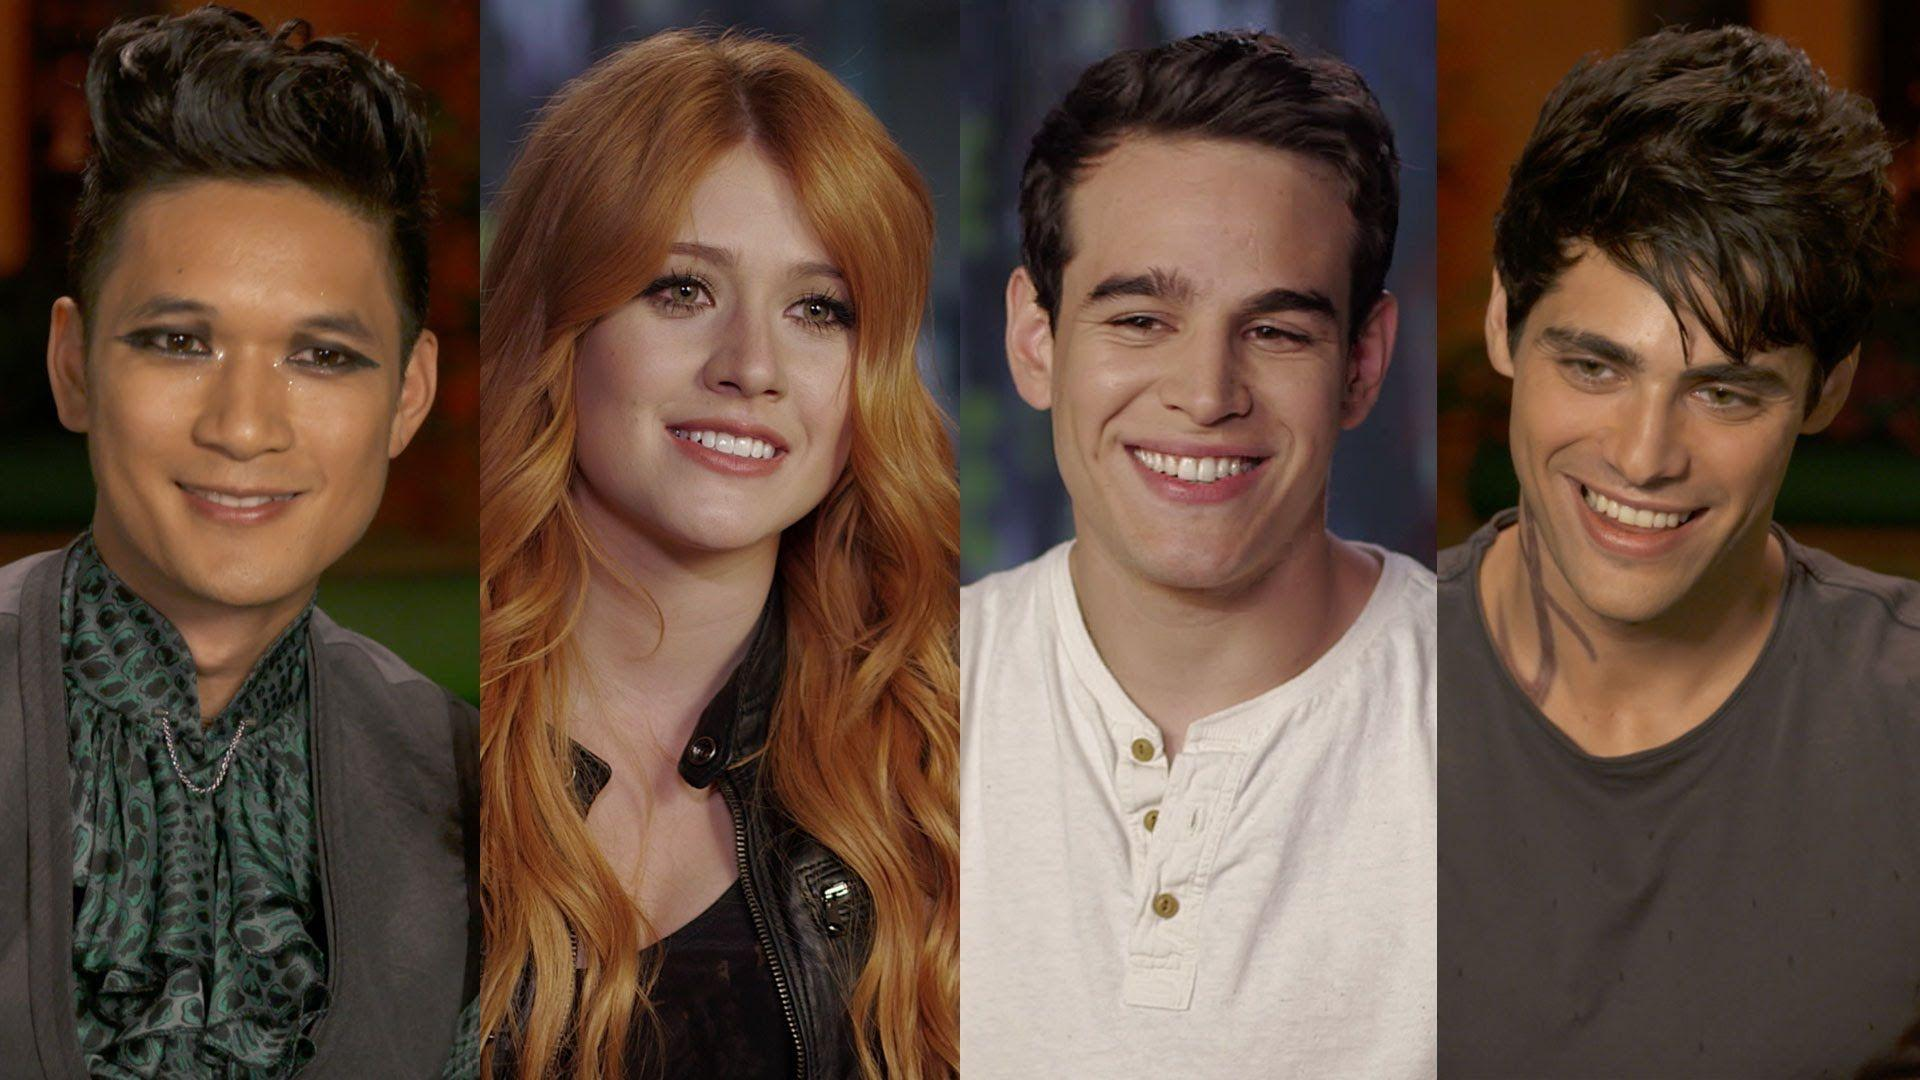 Shadowhunters Wallpaper HQ Photos #r06cmvjx – Yoanu